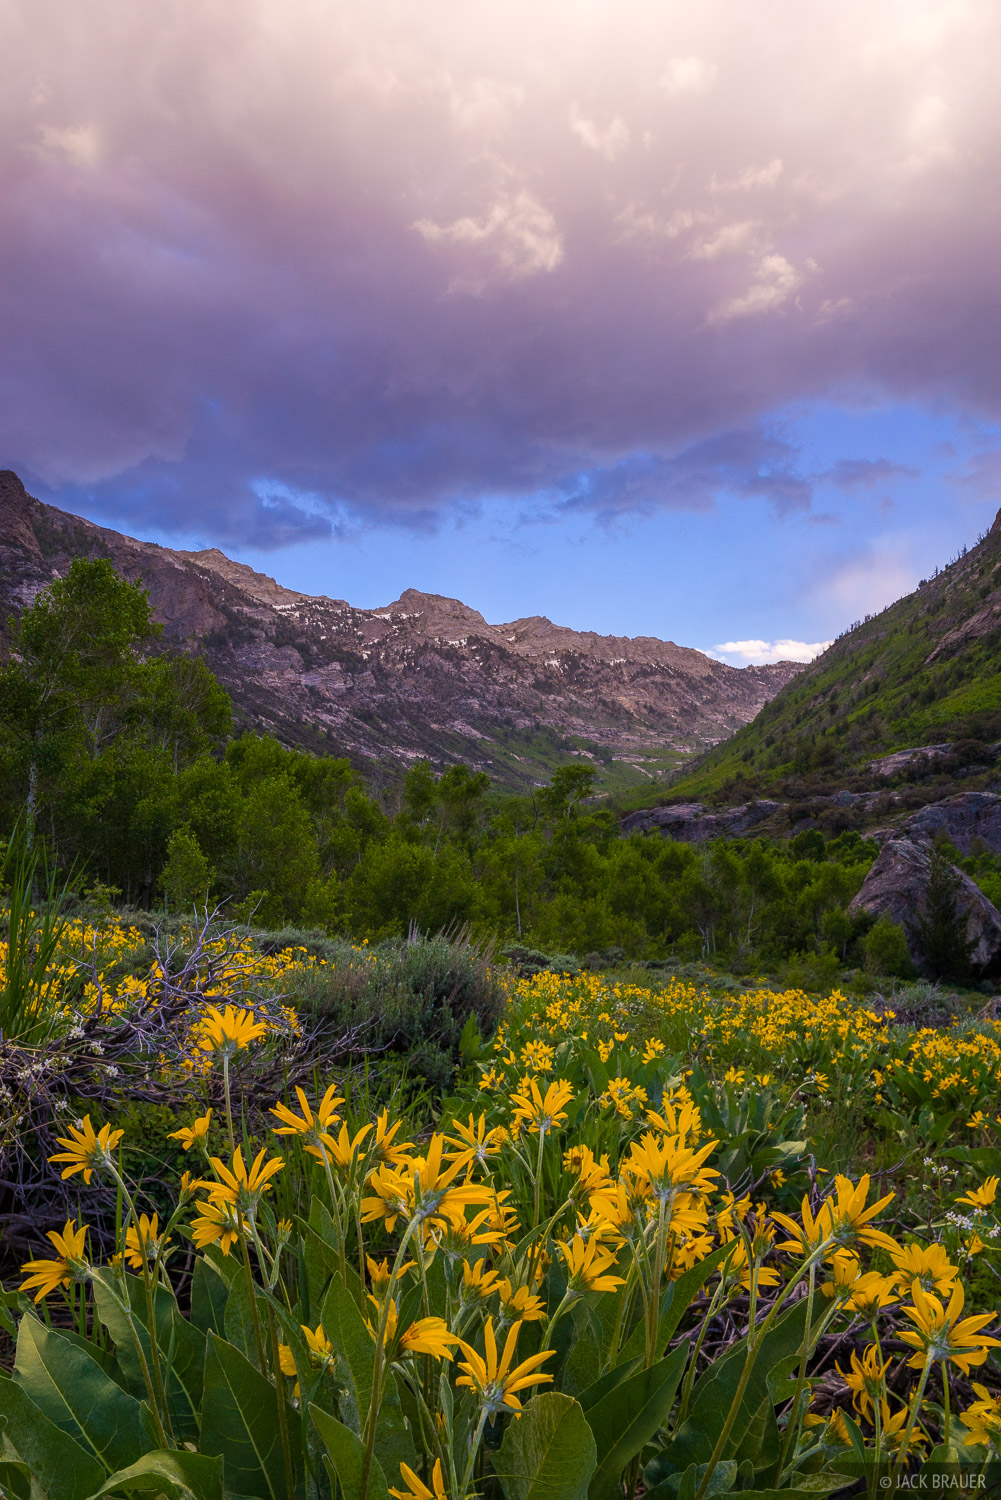 Early summer flowers in Lamoille Canyon, Ruby Mountains, Nevada.